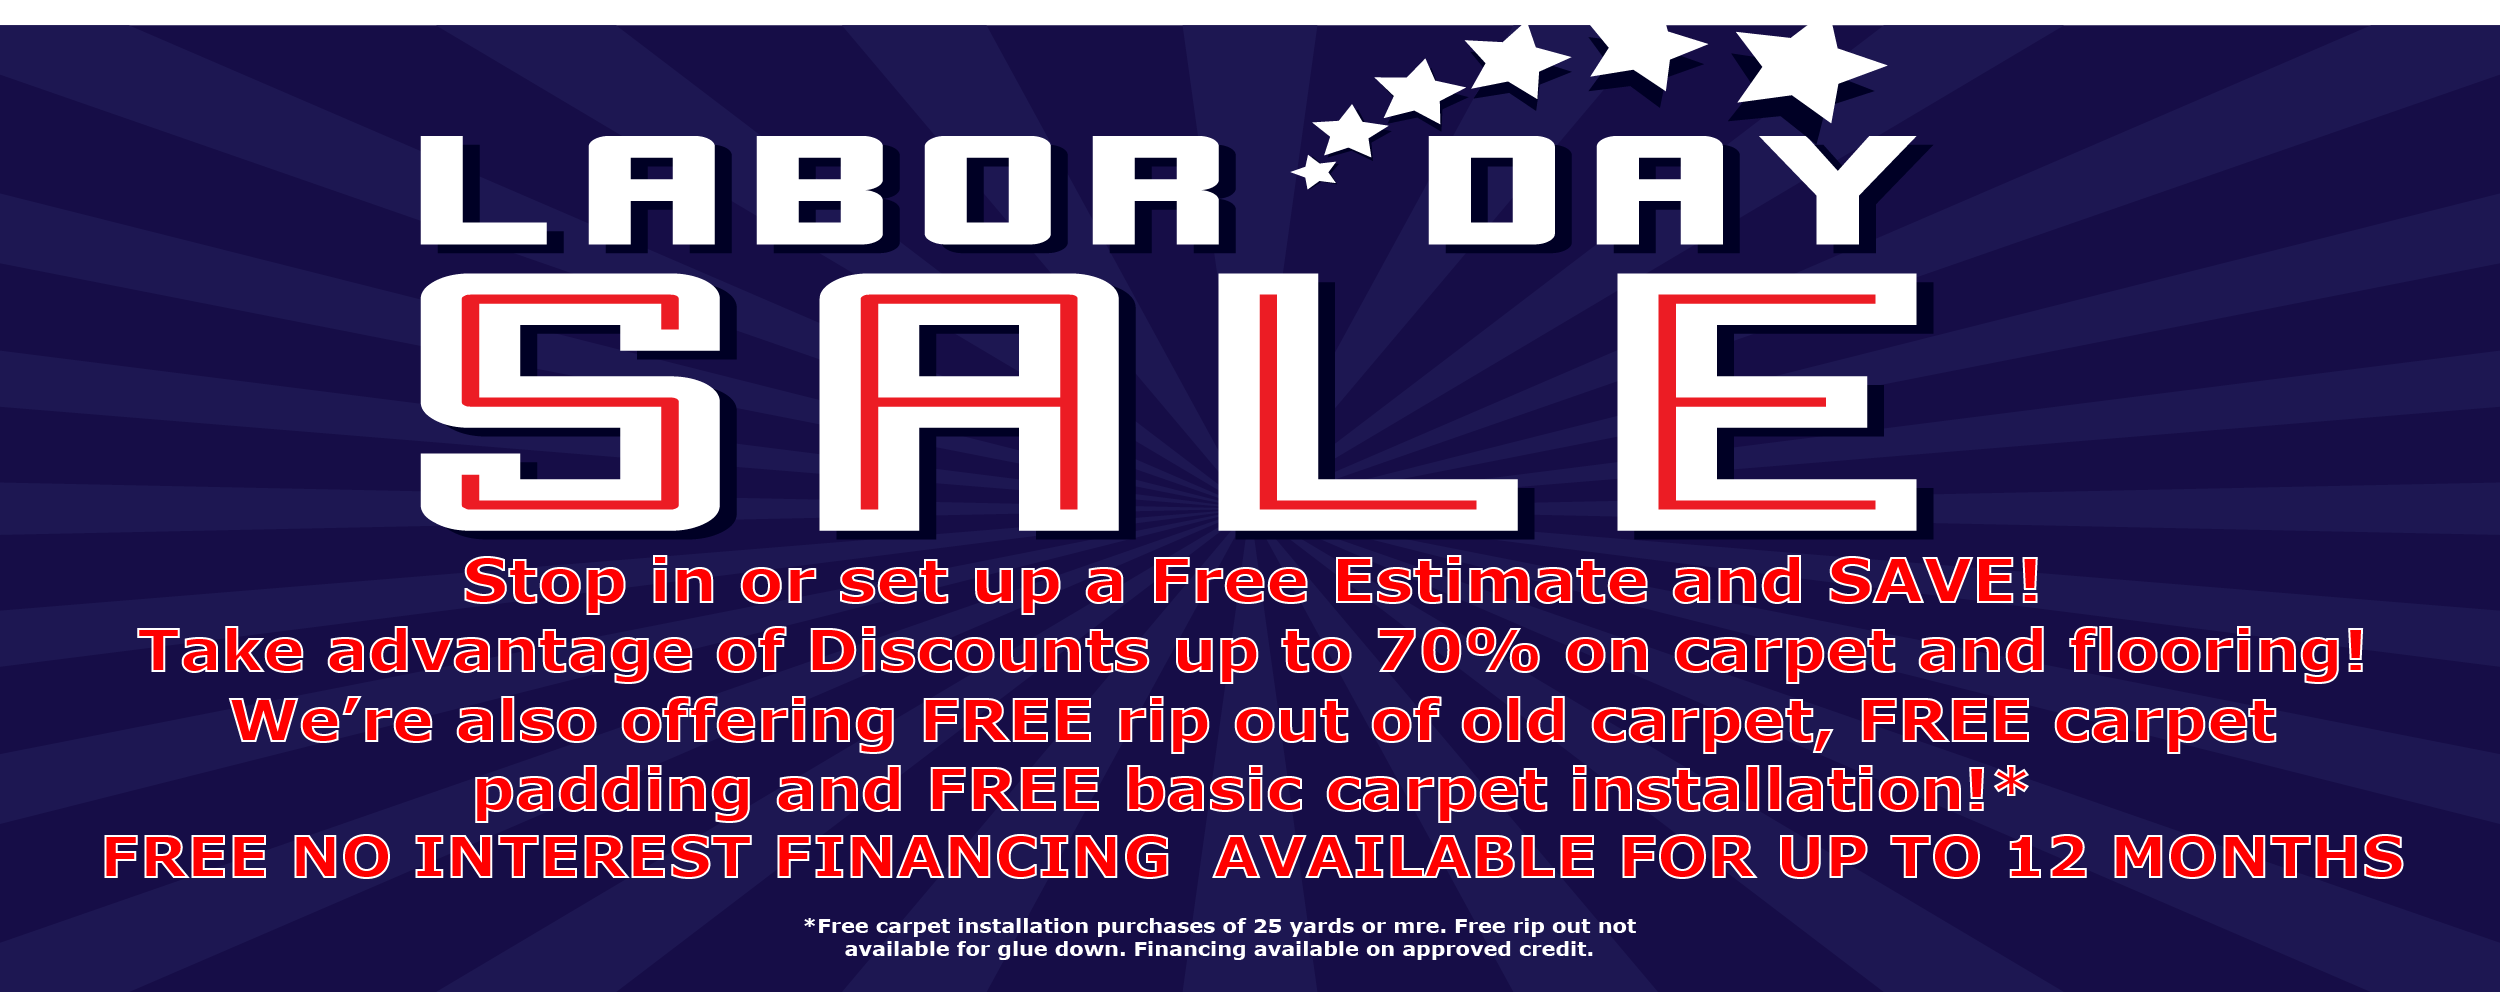 Summer carpet sale, summer flooring sale